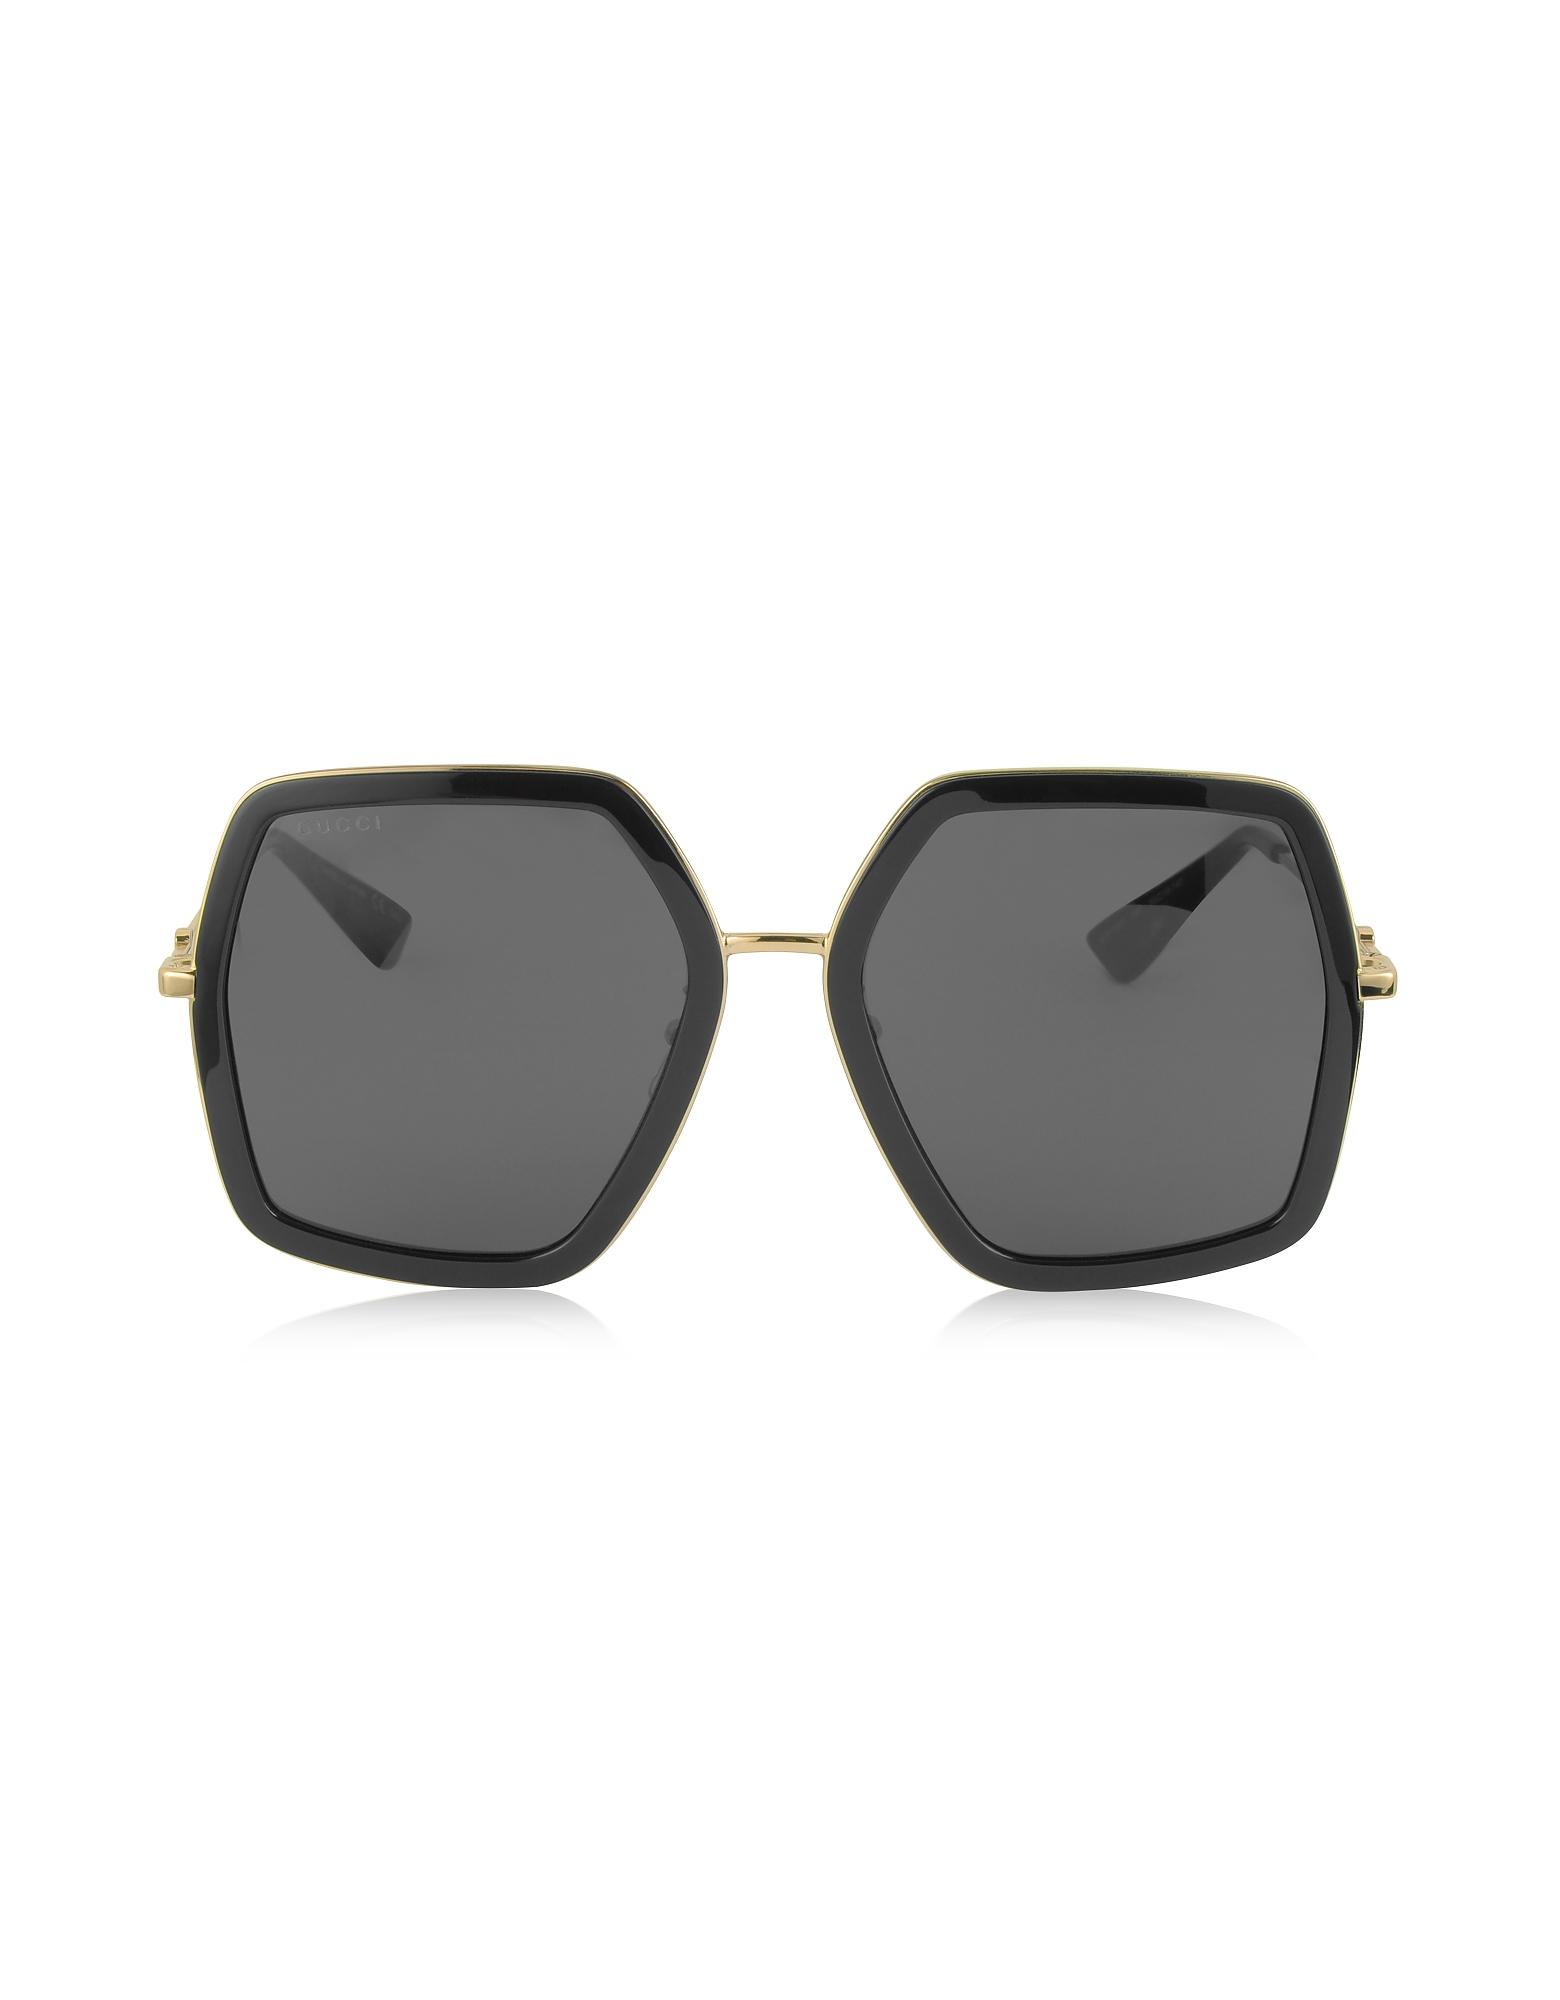 7d97a4c0099 Gucci. GG0106S 001 Black Acetate And Gold Metal Square Oversized Women s  Sunglasses